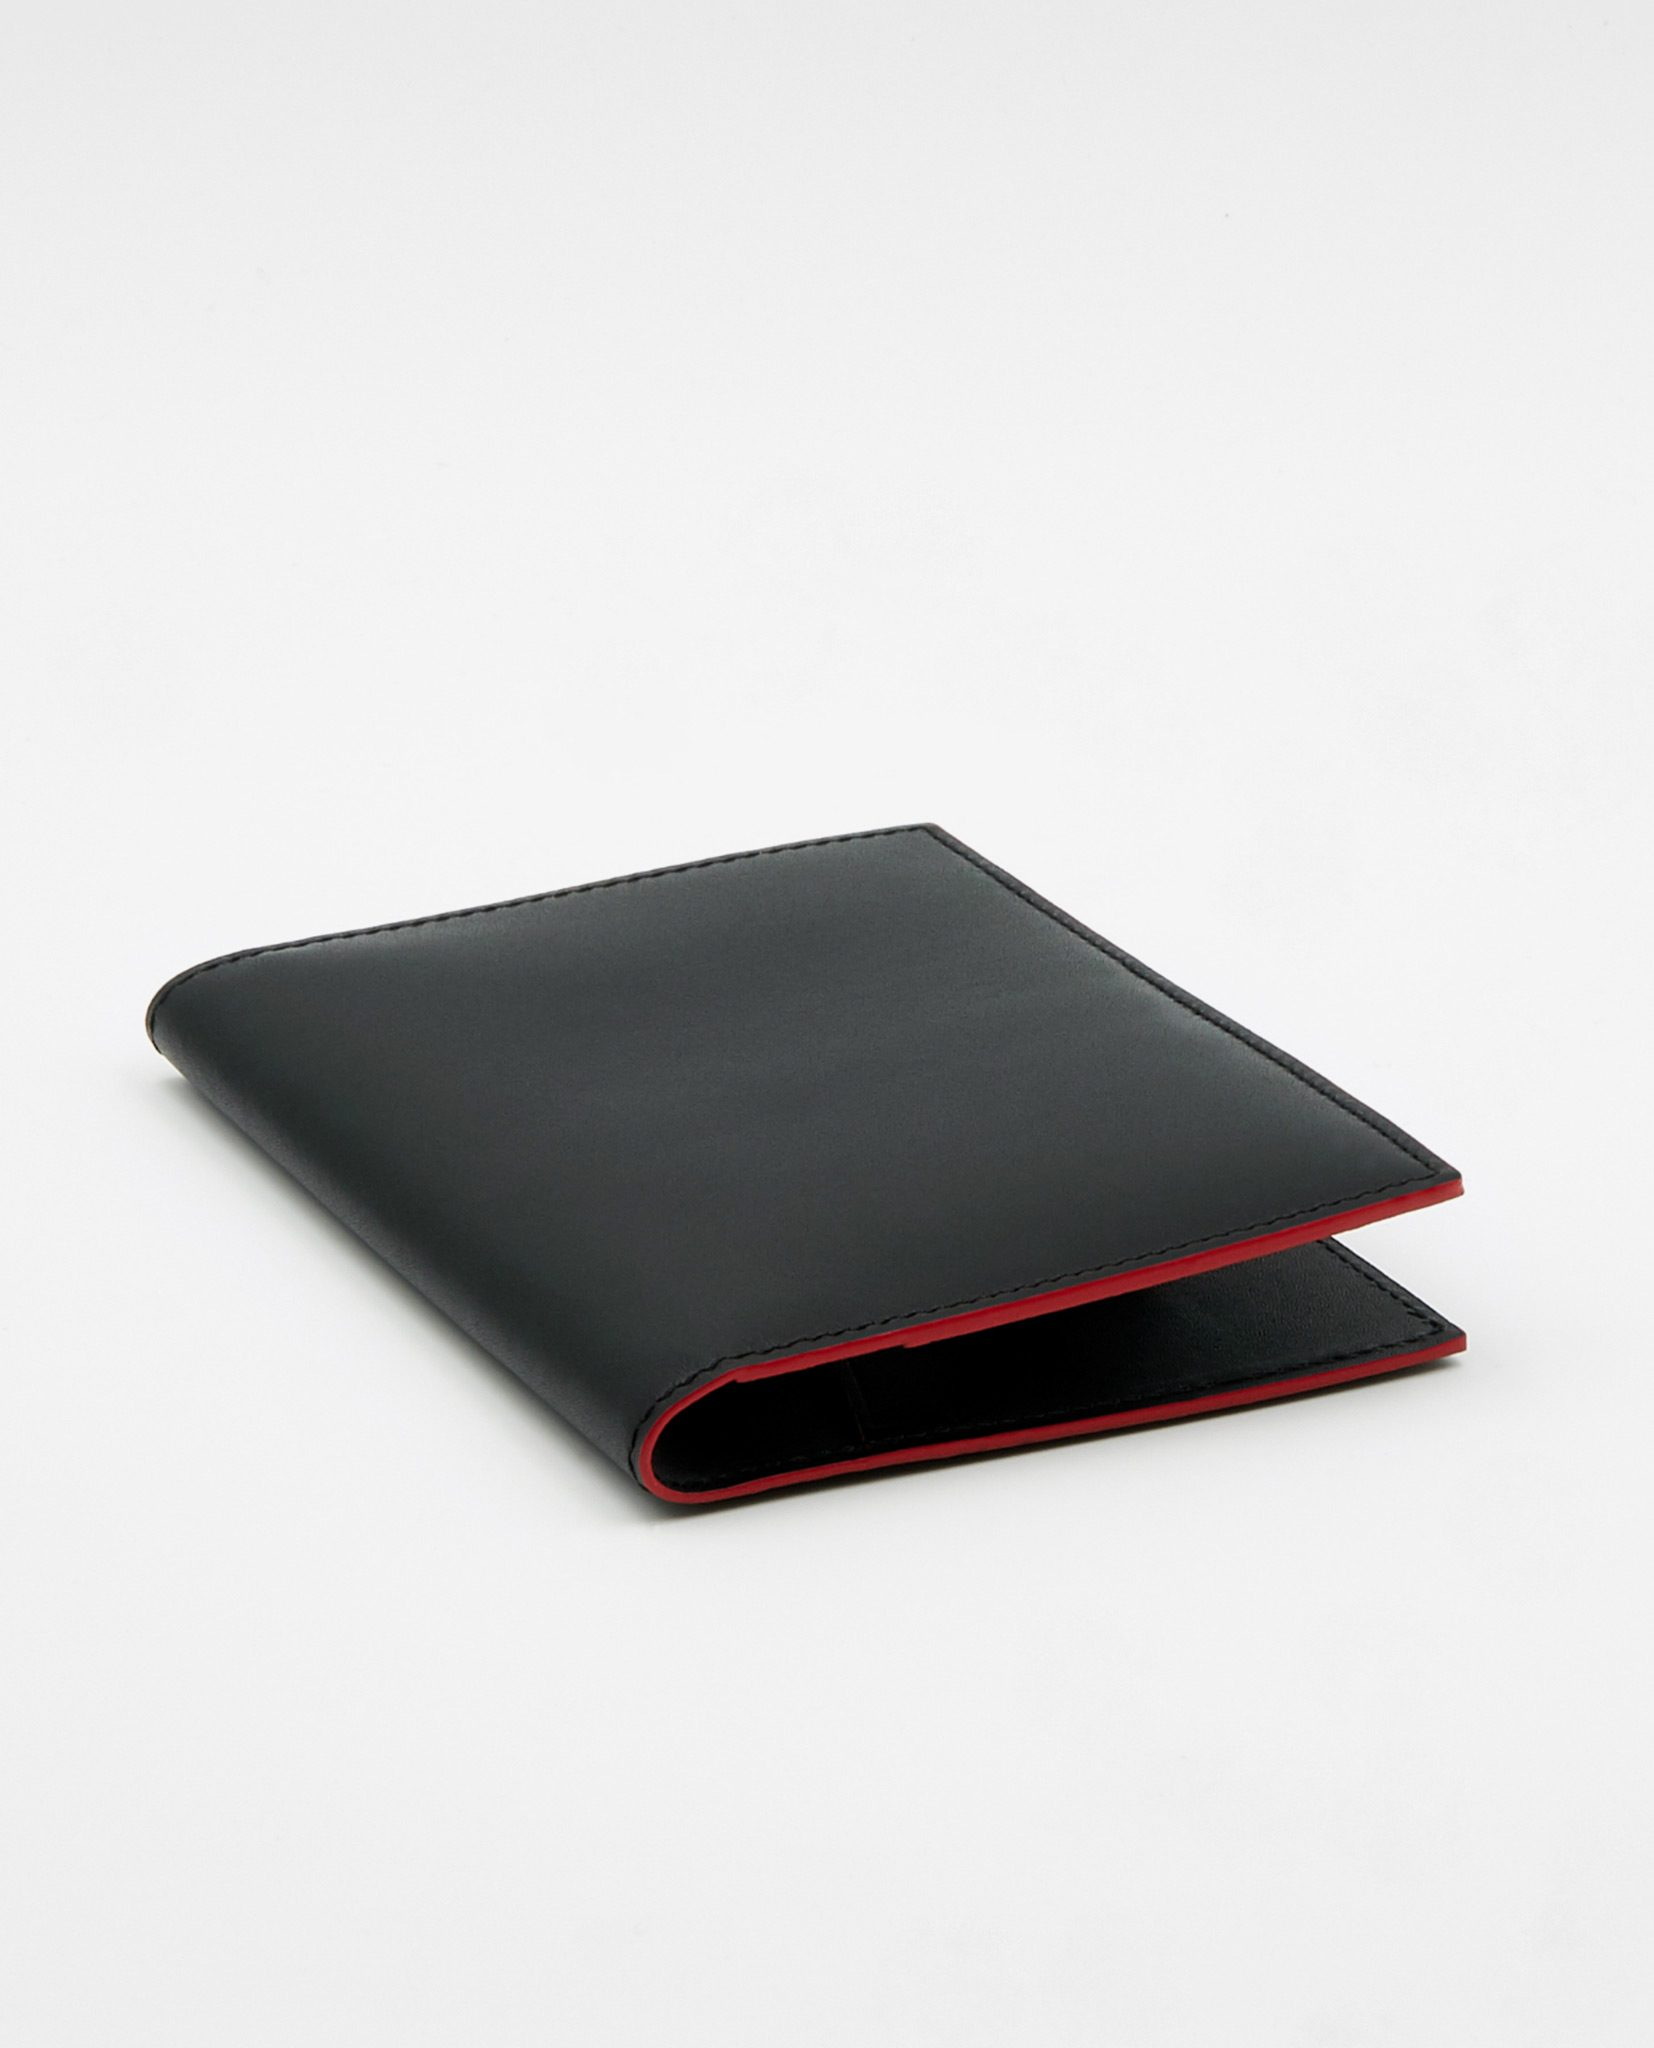 Soofre Smooth Leather Passport Holder Color Black Red